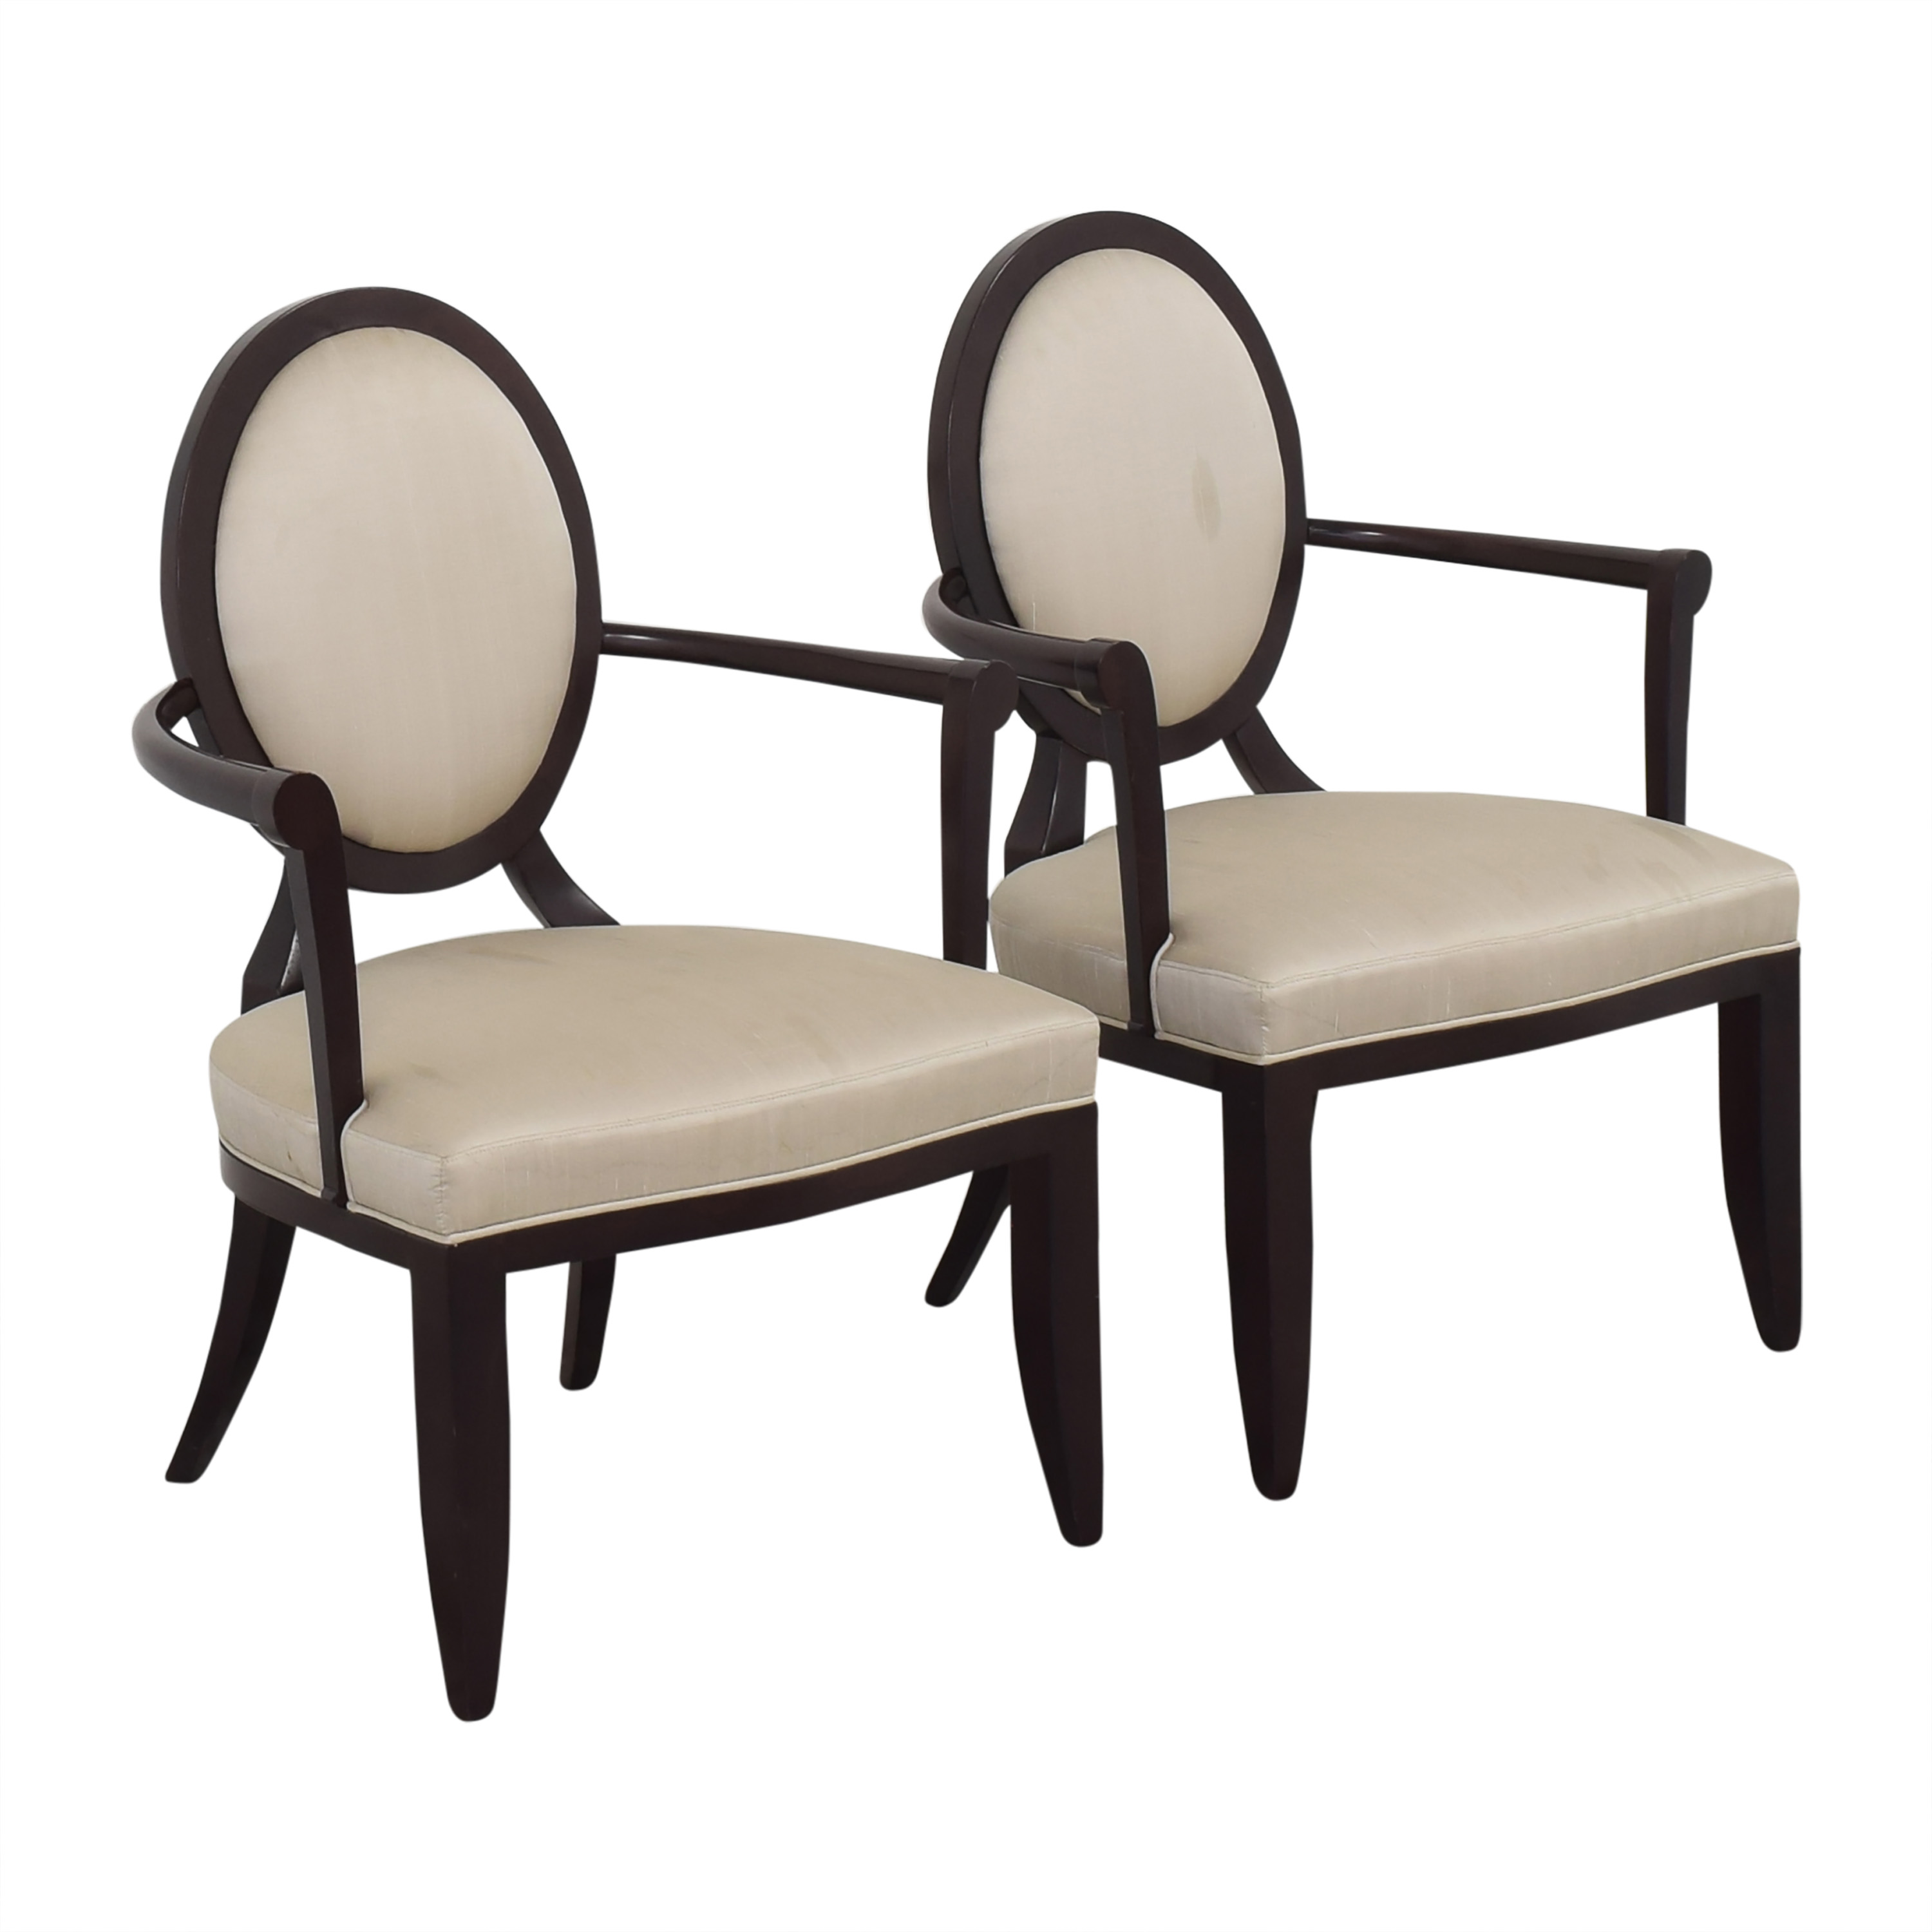 Baker Furniture Oval X-Back Dining Arm Chairs sale